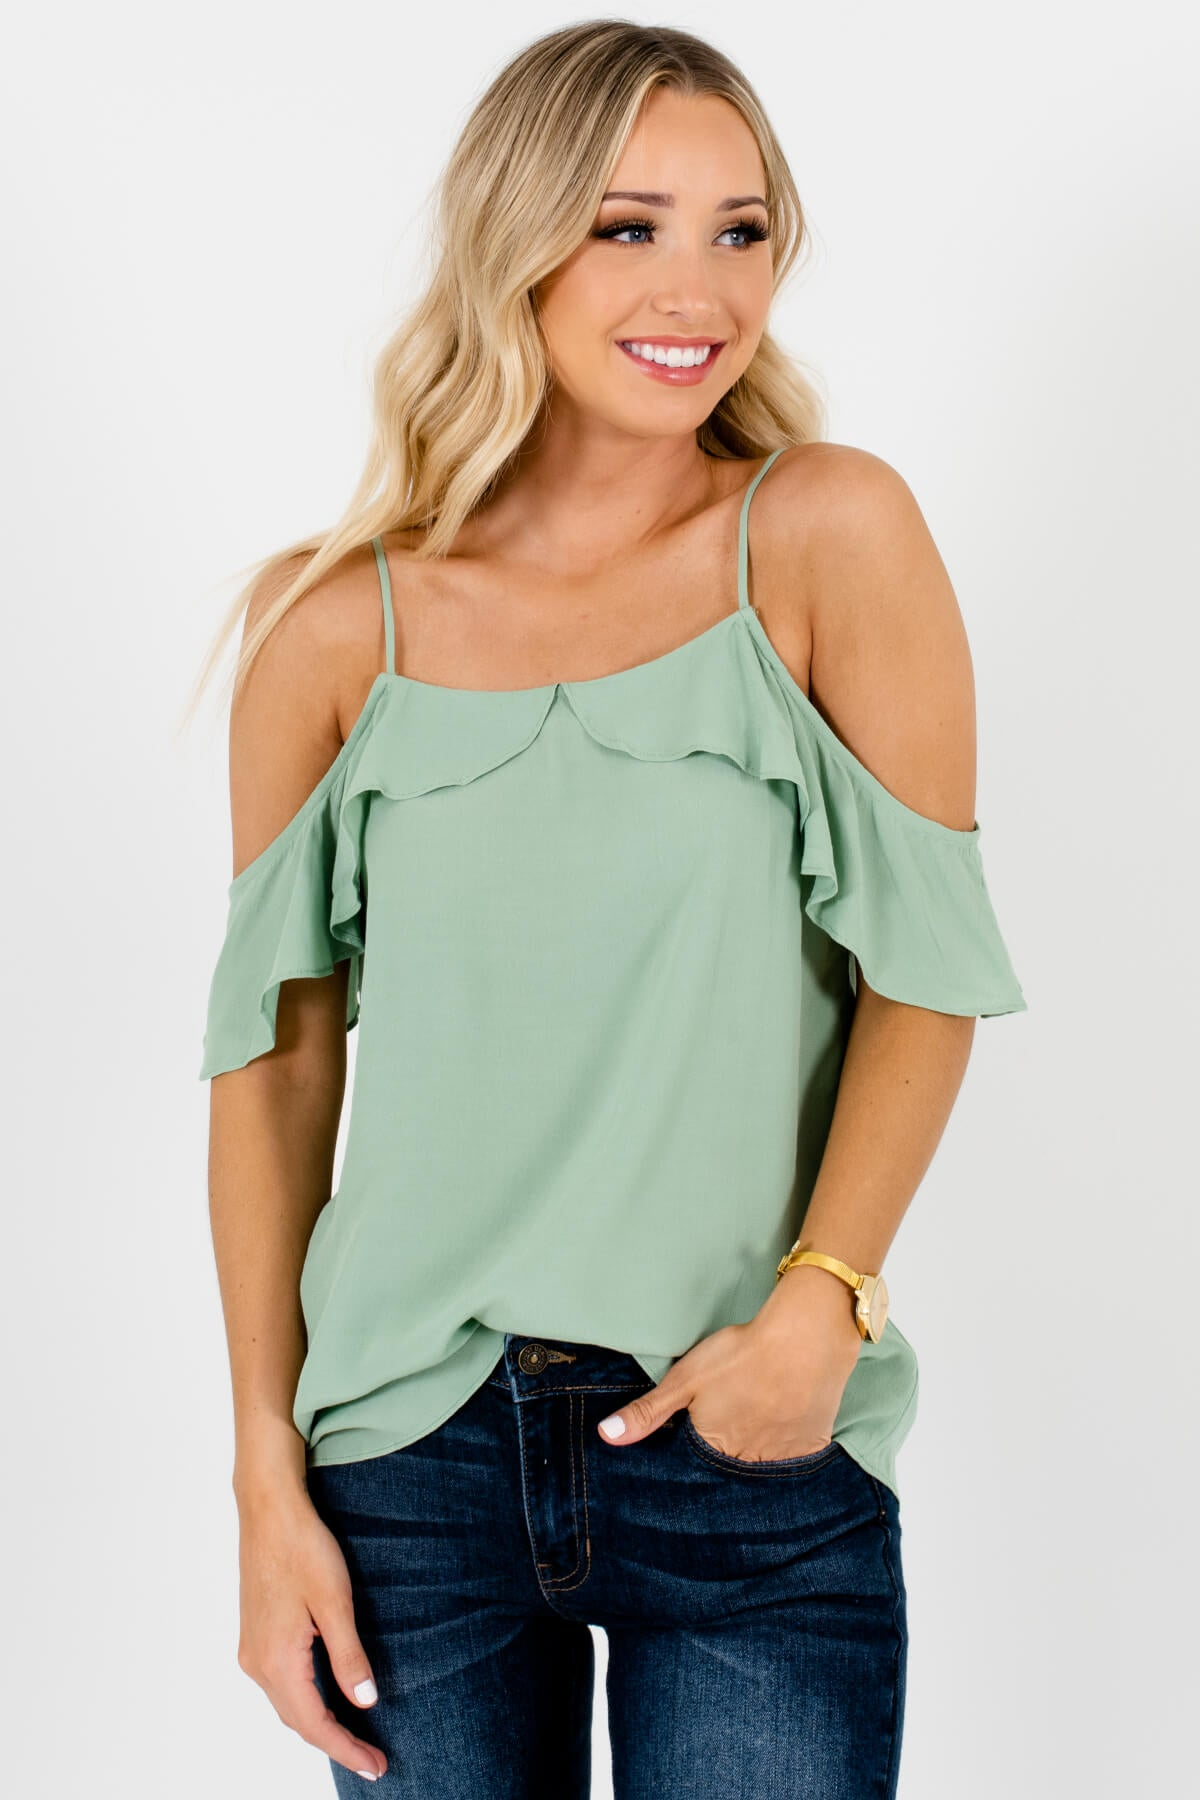 Green Ruffle Cold Shoulder Tops Affordable Online Boutique